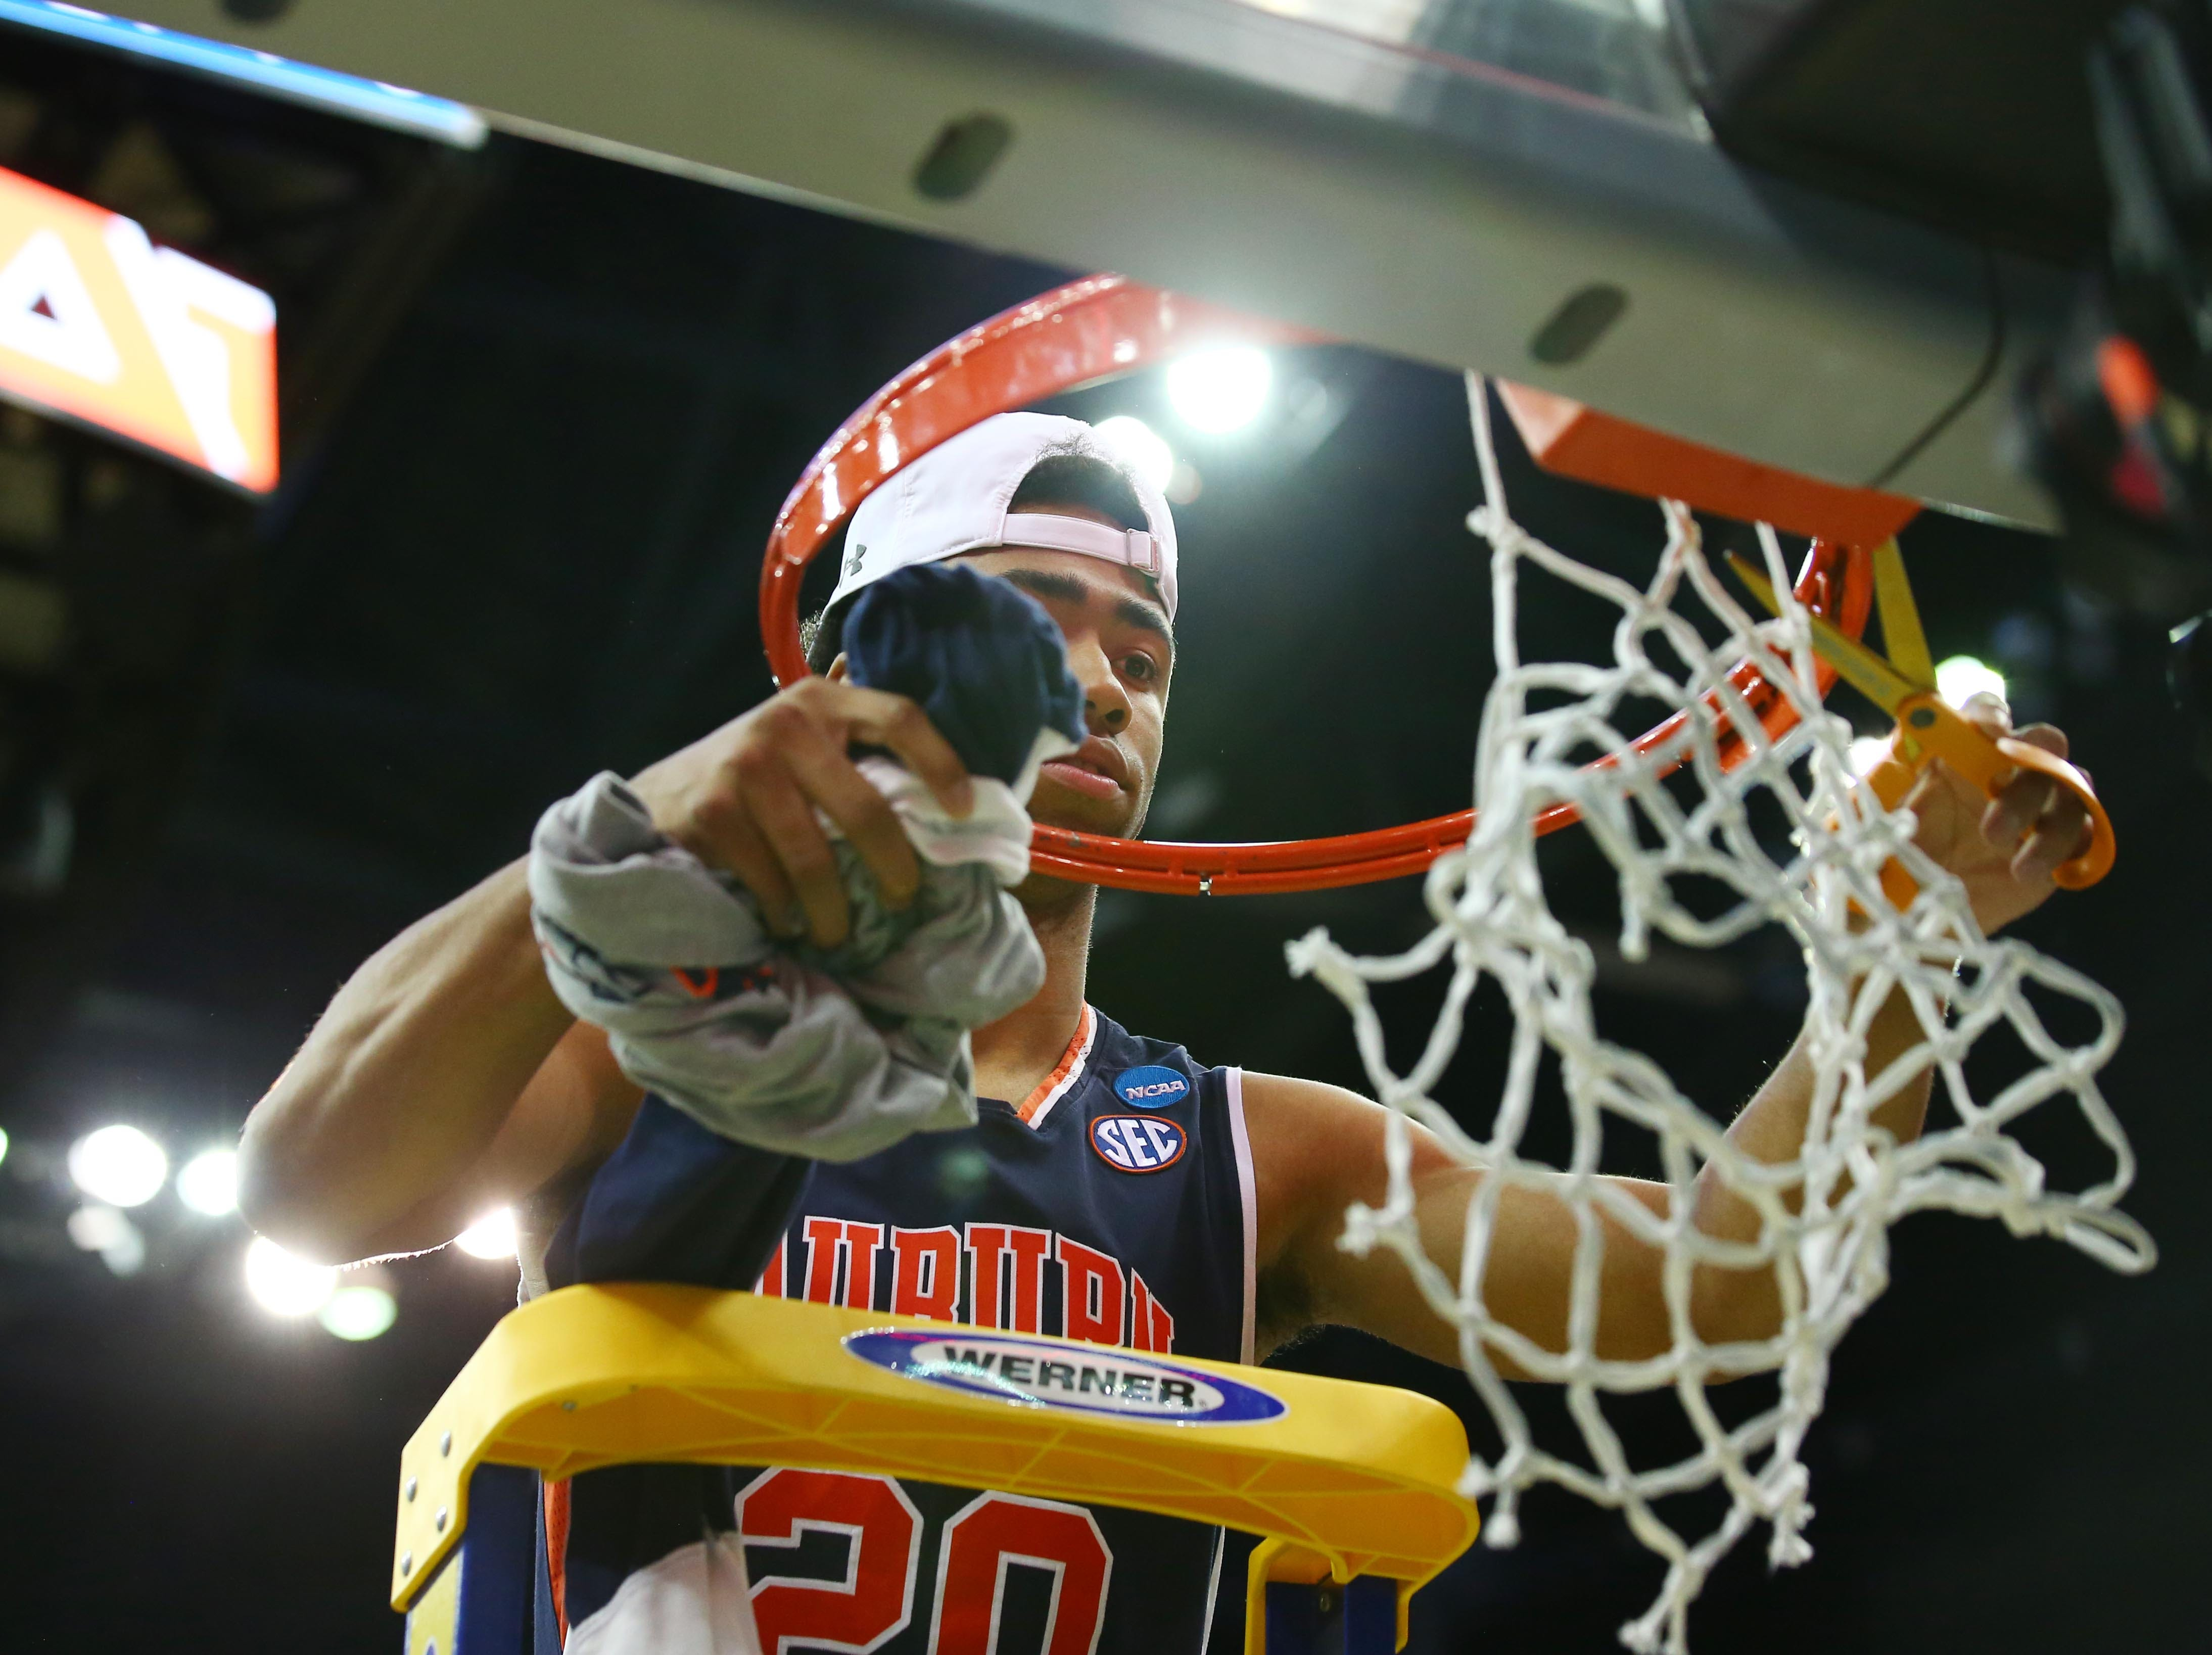 Mar 31, 2019; Kansas City, MO, United States; Auburn Tigers forward Myles Parker (20) cuts down the net after defeating the Kentucky Wildcats in the championship game of the midwest regional of the 2019 NCAA Tournament at Sprint Center. Mandatory Credit: Jay Biggerstaff-USA TODAY Sports